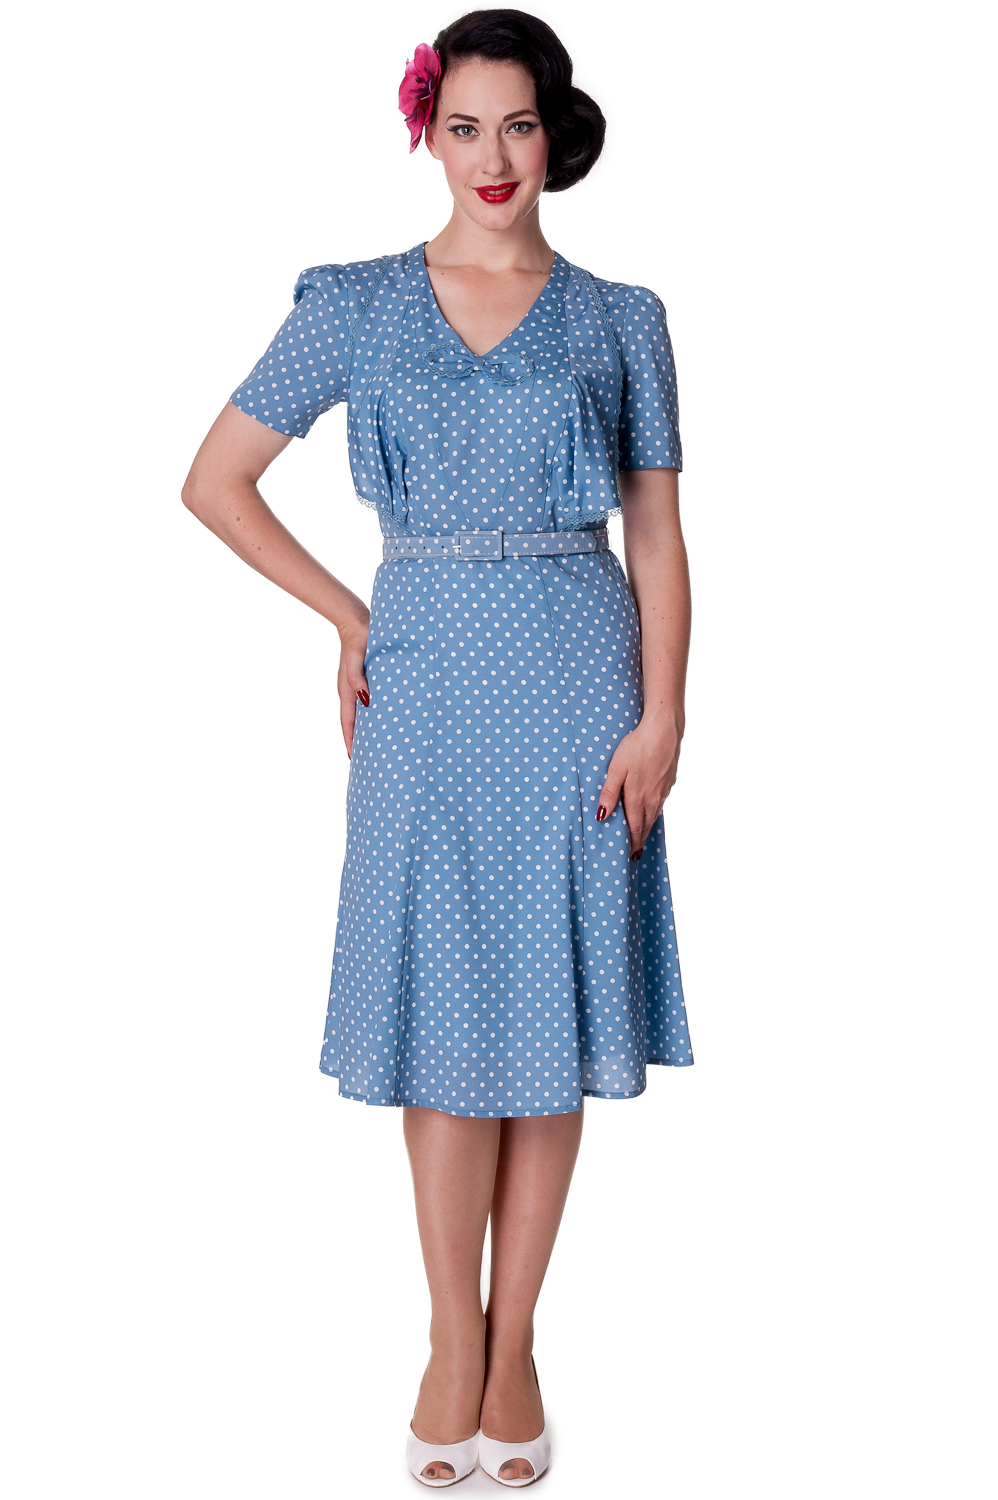 RKP48 Hell Bunny Jennifer Polka Dots Tea Dress Rockabilly Pinup ...